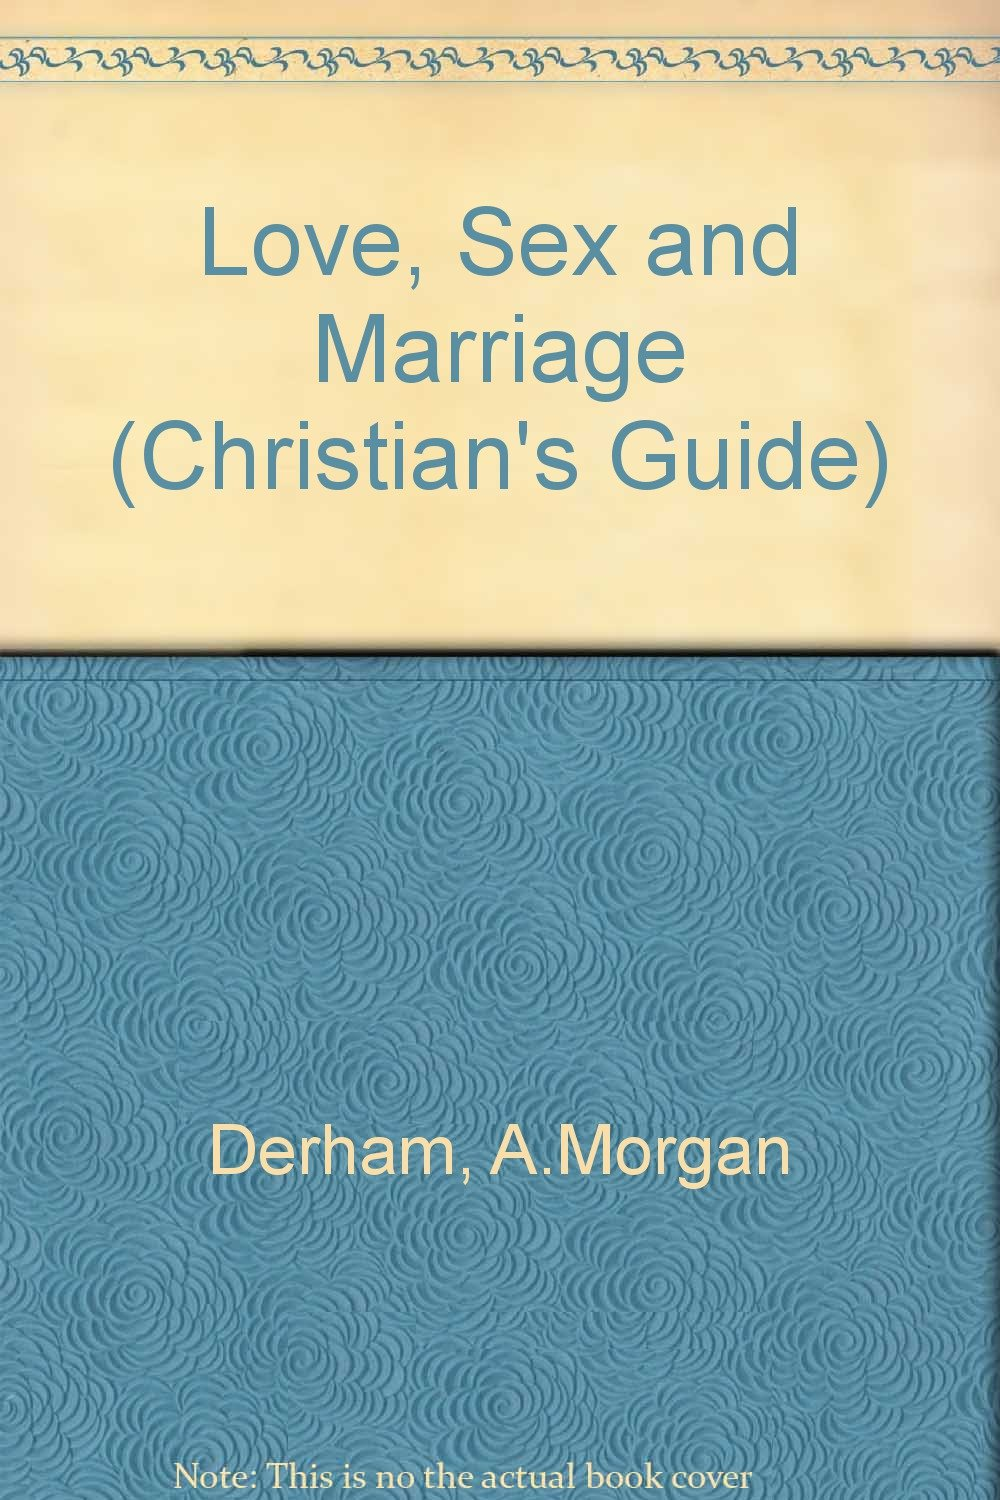 Christian guide to sex